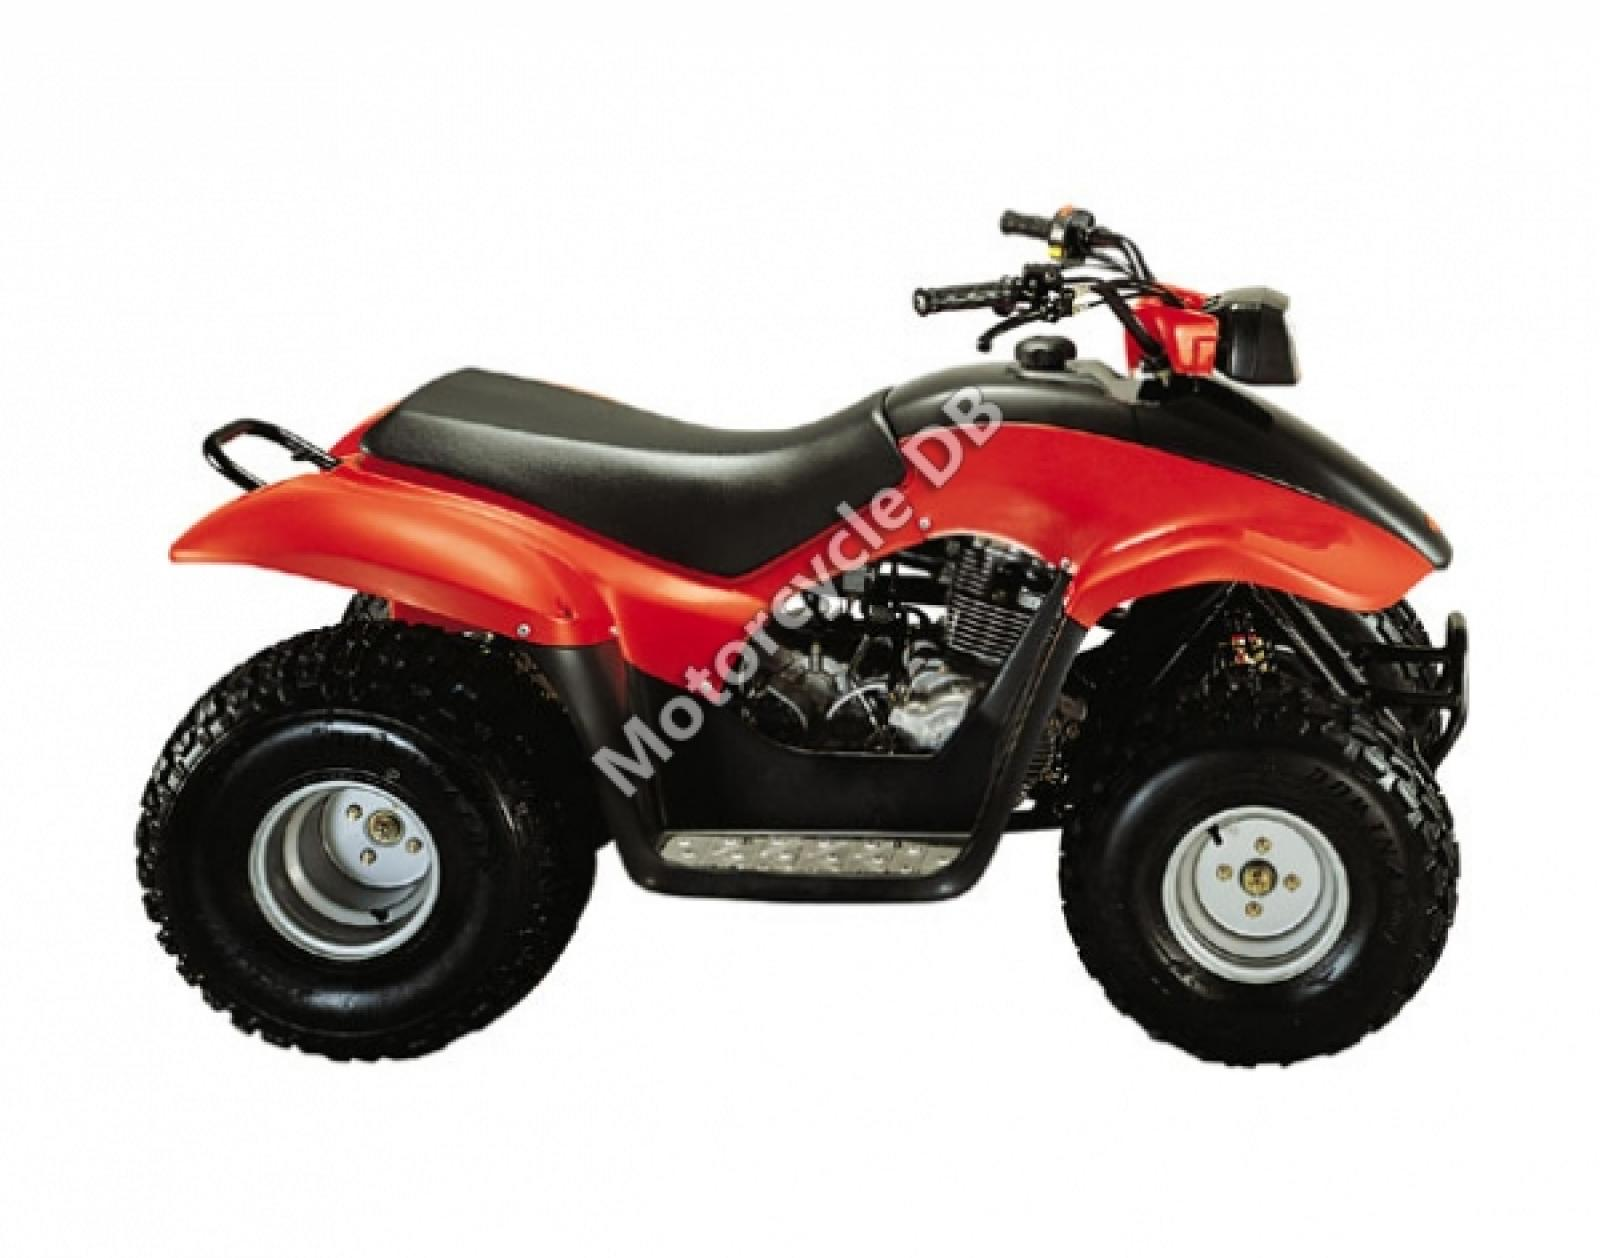 kymco super 8 125 e3 2007 13 100 [ kymco super 8 50cc 2008 shop manual ] user manual and kymco super8 125 wiring diagram at virtualis.co